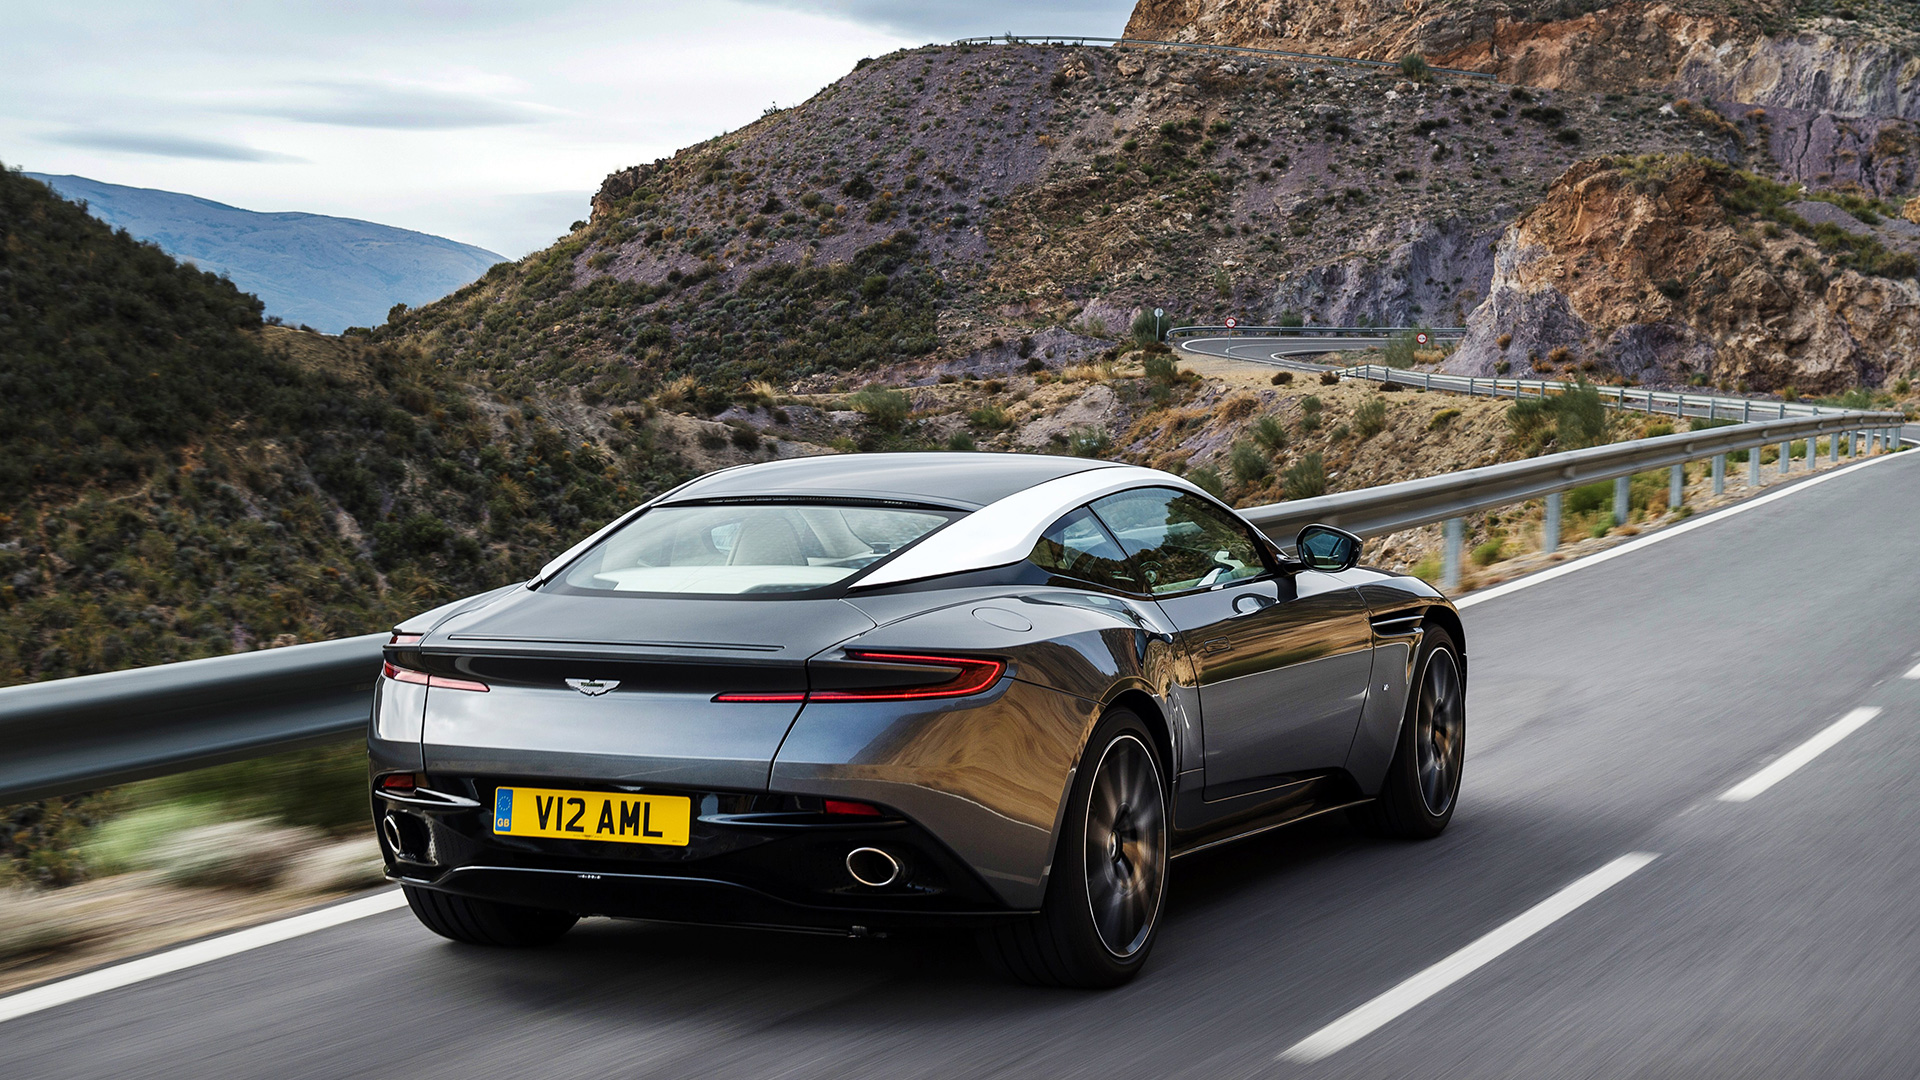 Aston Martin DB11 2016 STD Price Mileage Reviews Specification